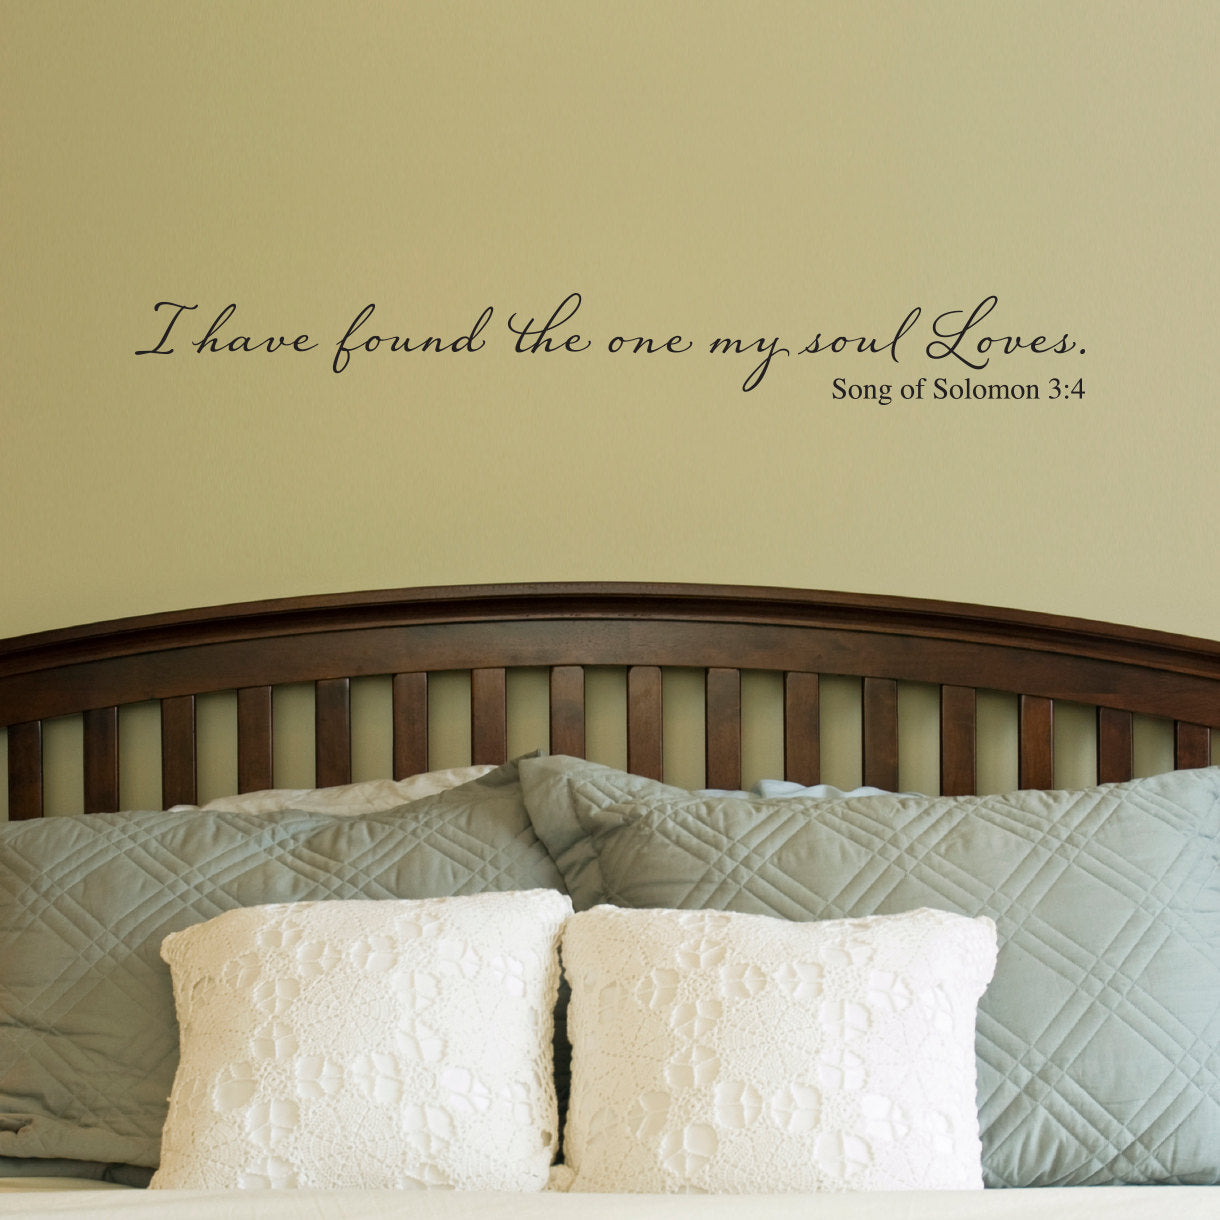 Wall Decals - Phrases and Quotes Page 6 - Stephen Edward Graphics